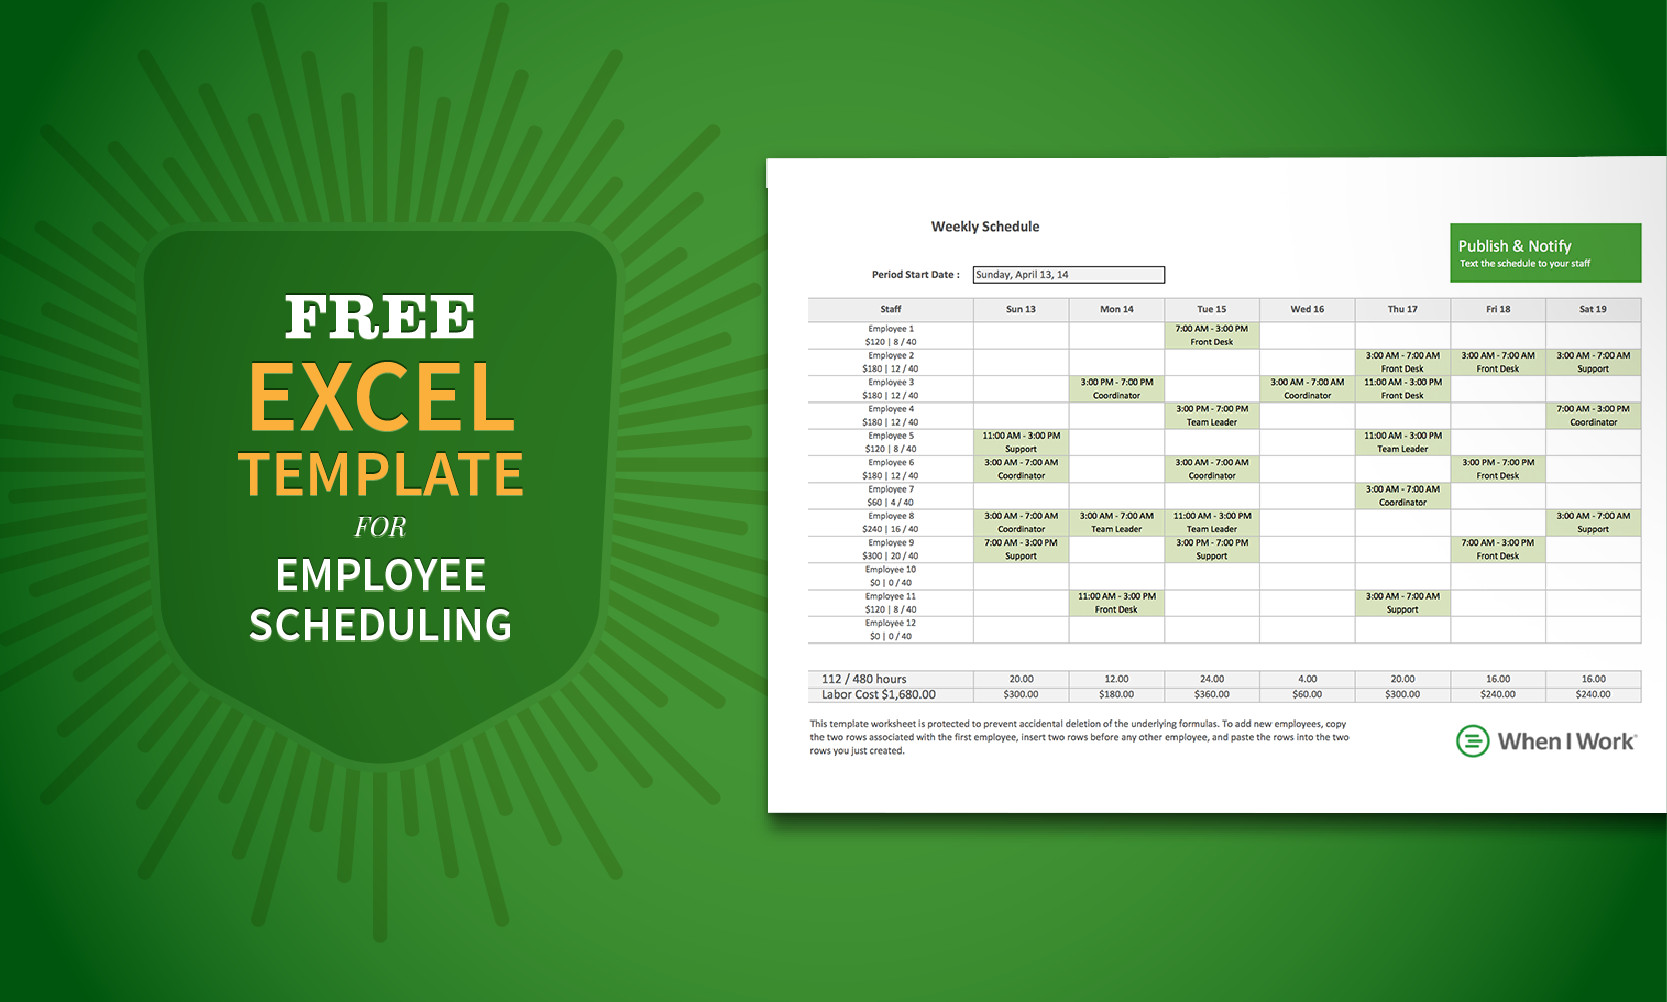 Excel Employee Schedule Template Free Excel Template for Employee Scheduling